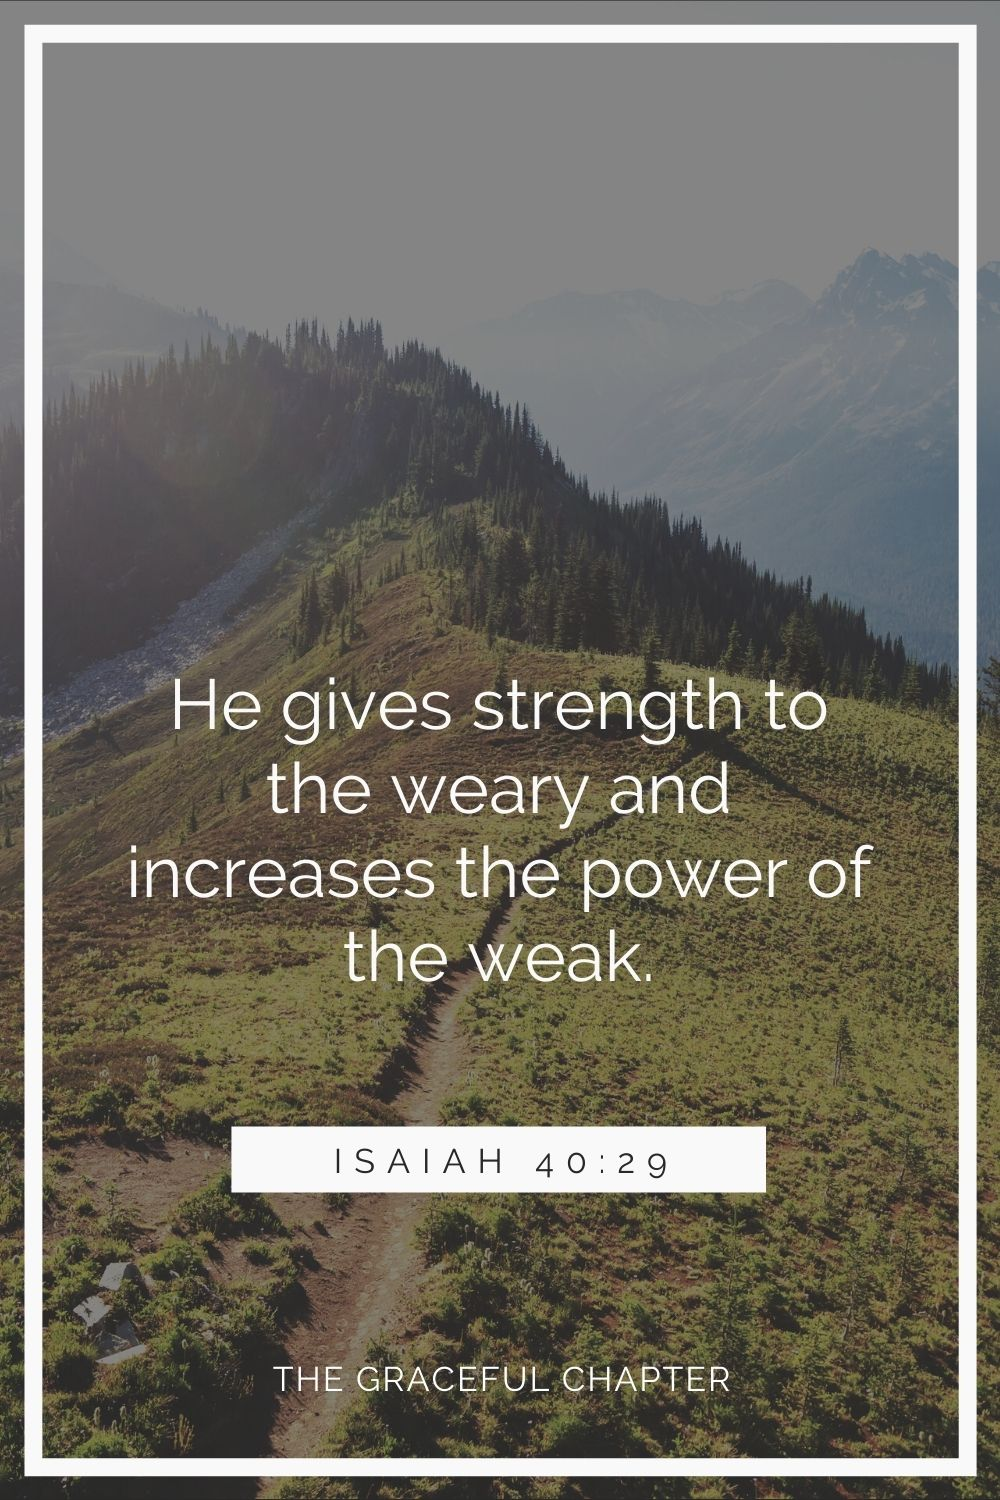 He gives strength to the weary and increases the power of the weak.He gives strength to the weary and increases the power of the weak. Isaiah 40:29